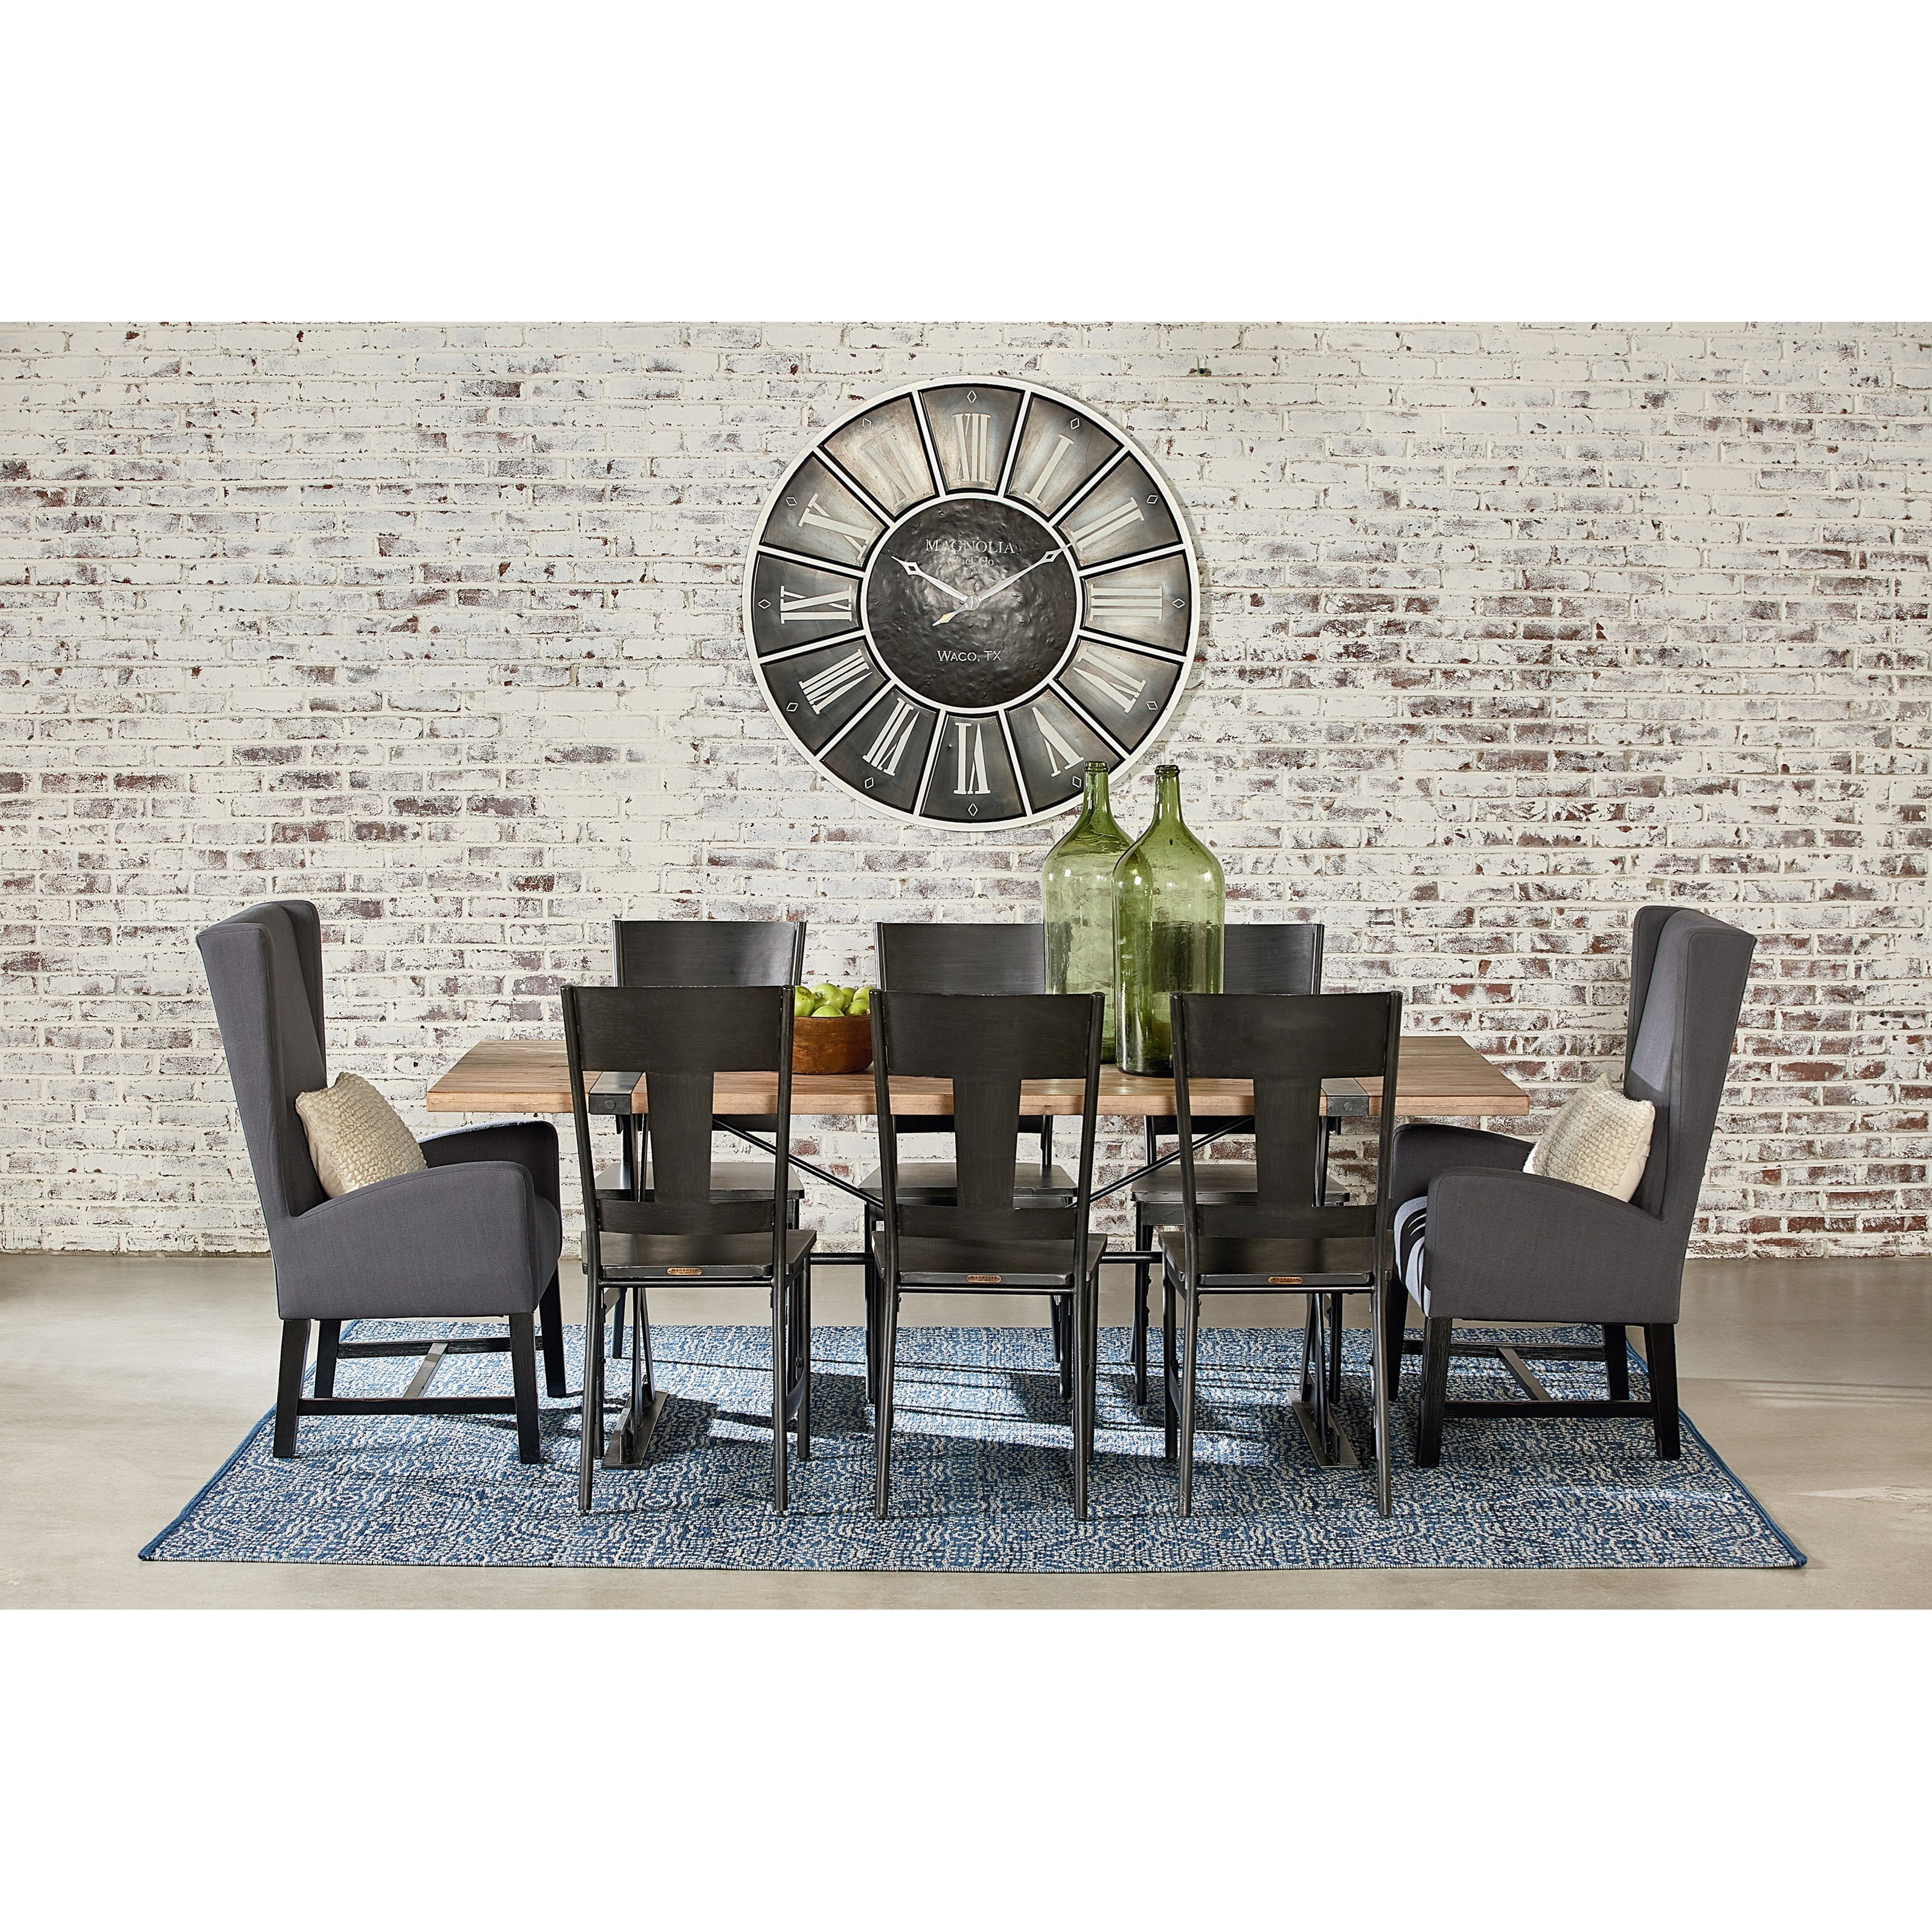 Magnolia Home By Joanna Gaines Industrial Table And Chair Set